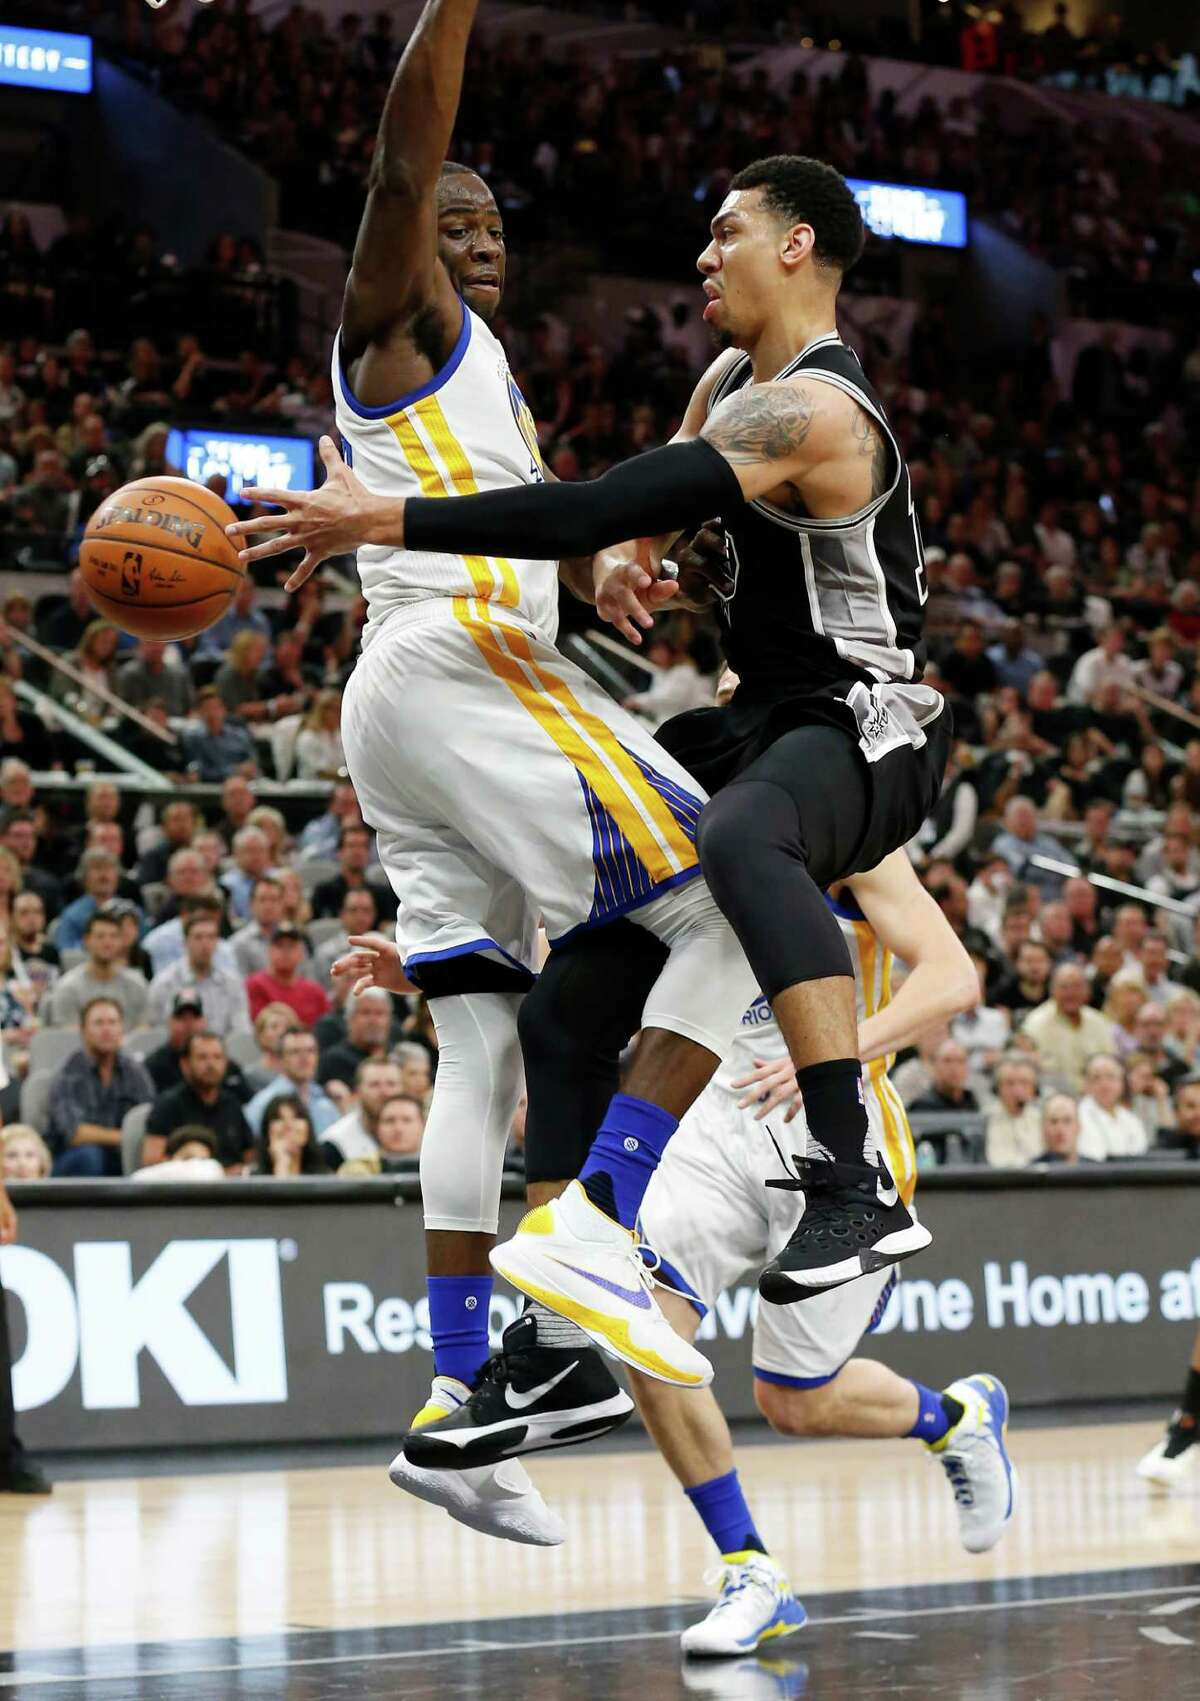 Spurs' Danny Green (14) pass the ball around Golden State Warriors' Draymond Green (23) at the AT&T Center on Sunday, Apr. 10, 2016.